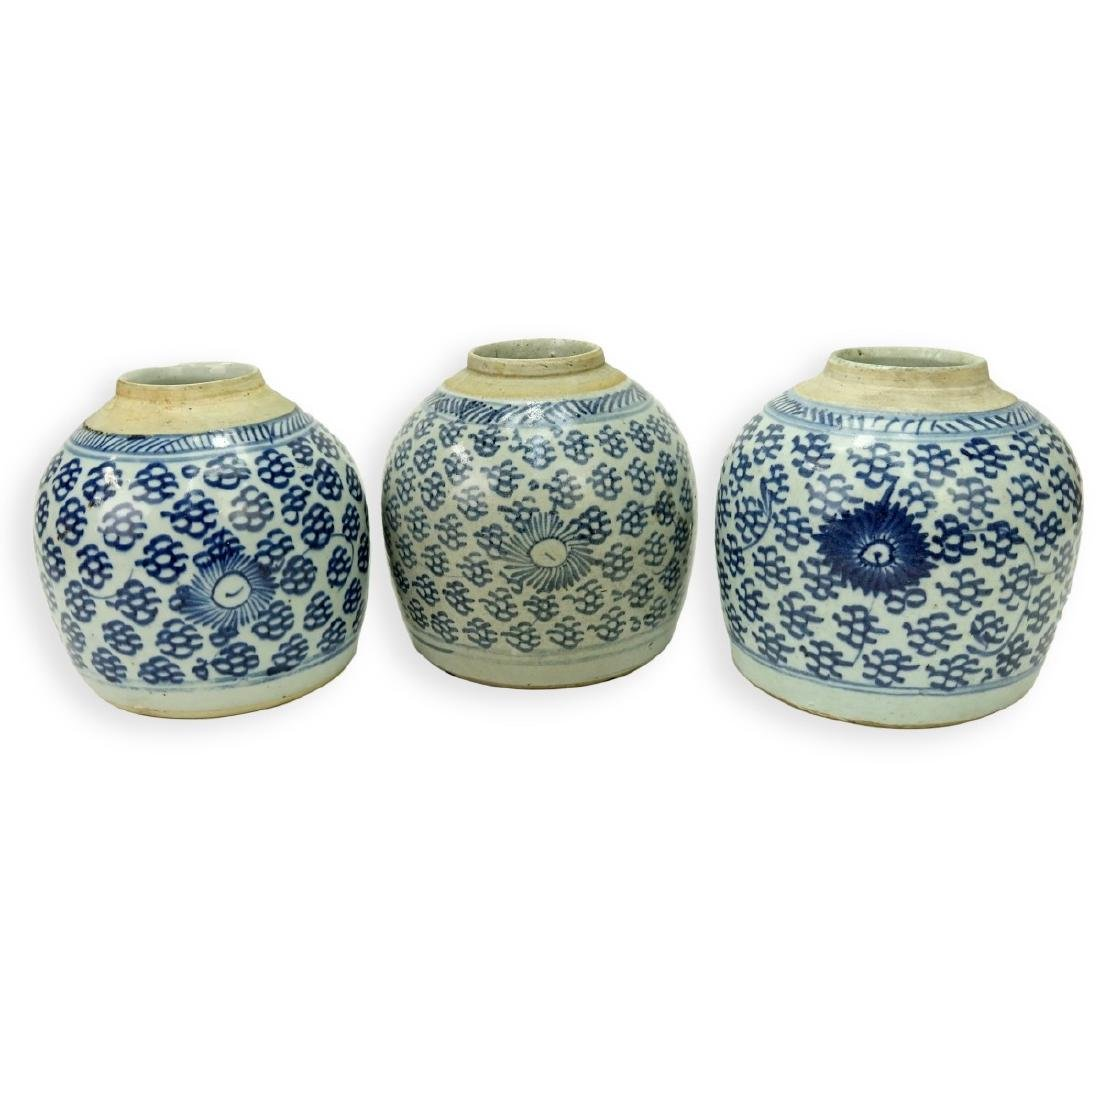 3 Antique Chinese Blue & White Porcelain Jars